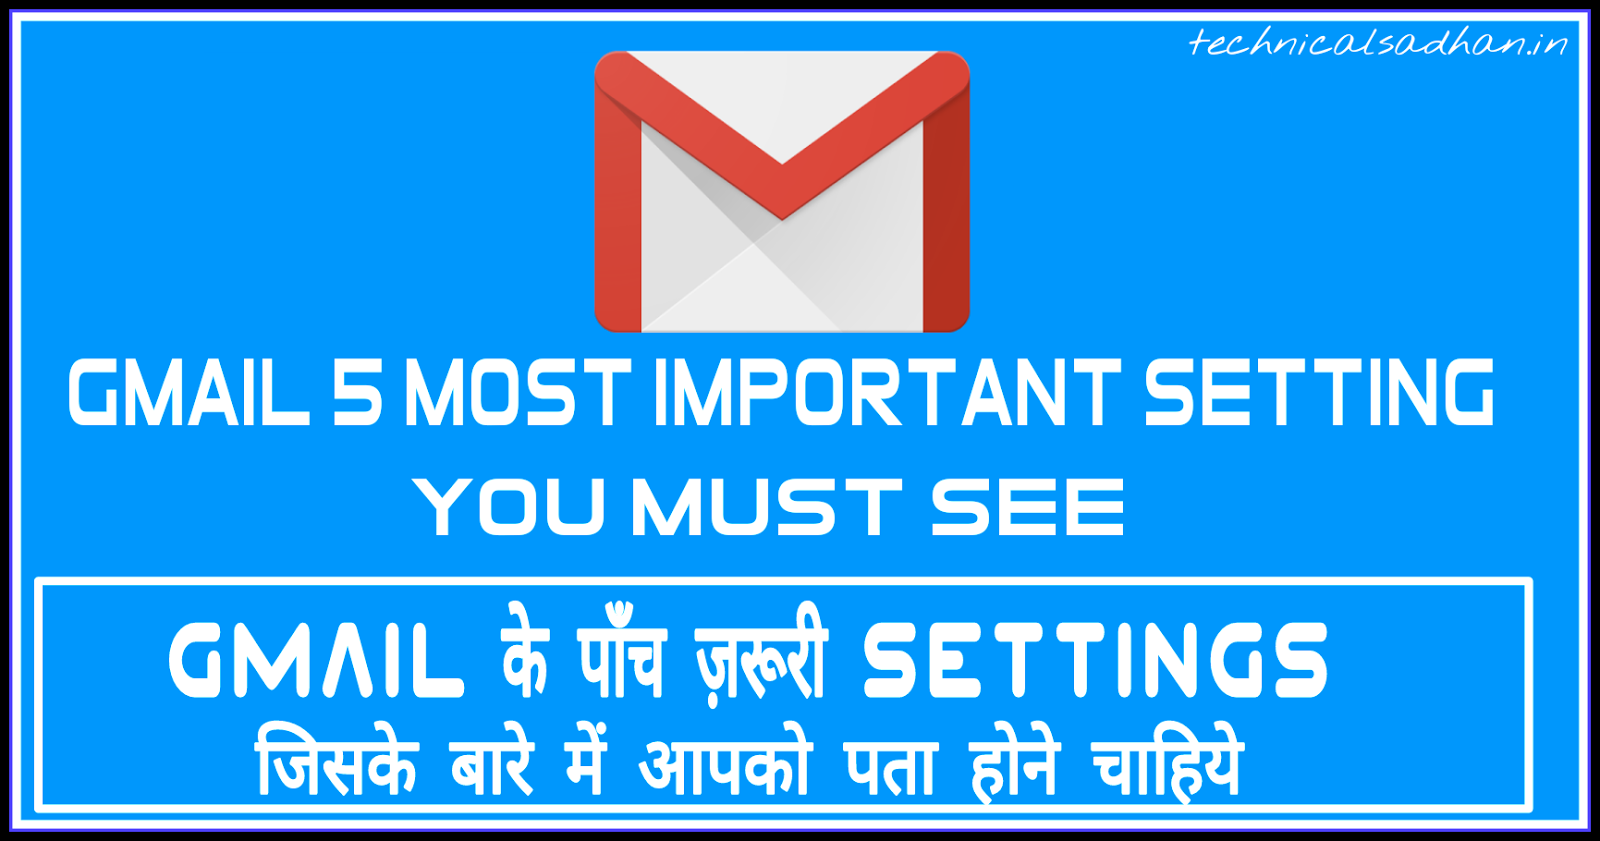 Gmail 5 Most Important Setting You Must See